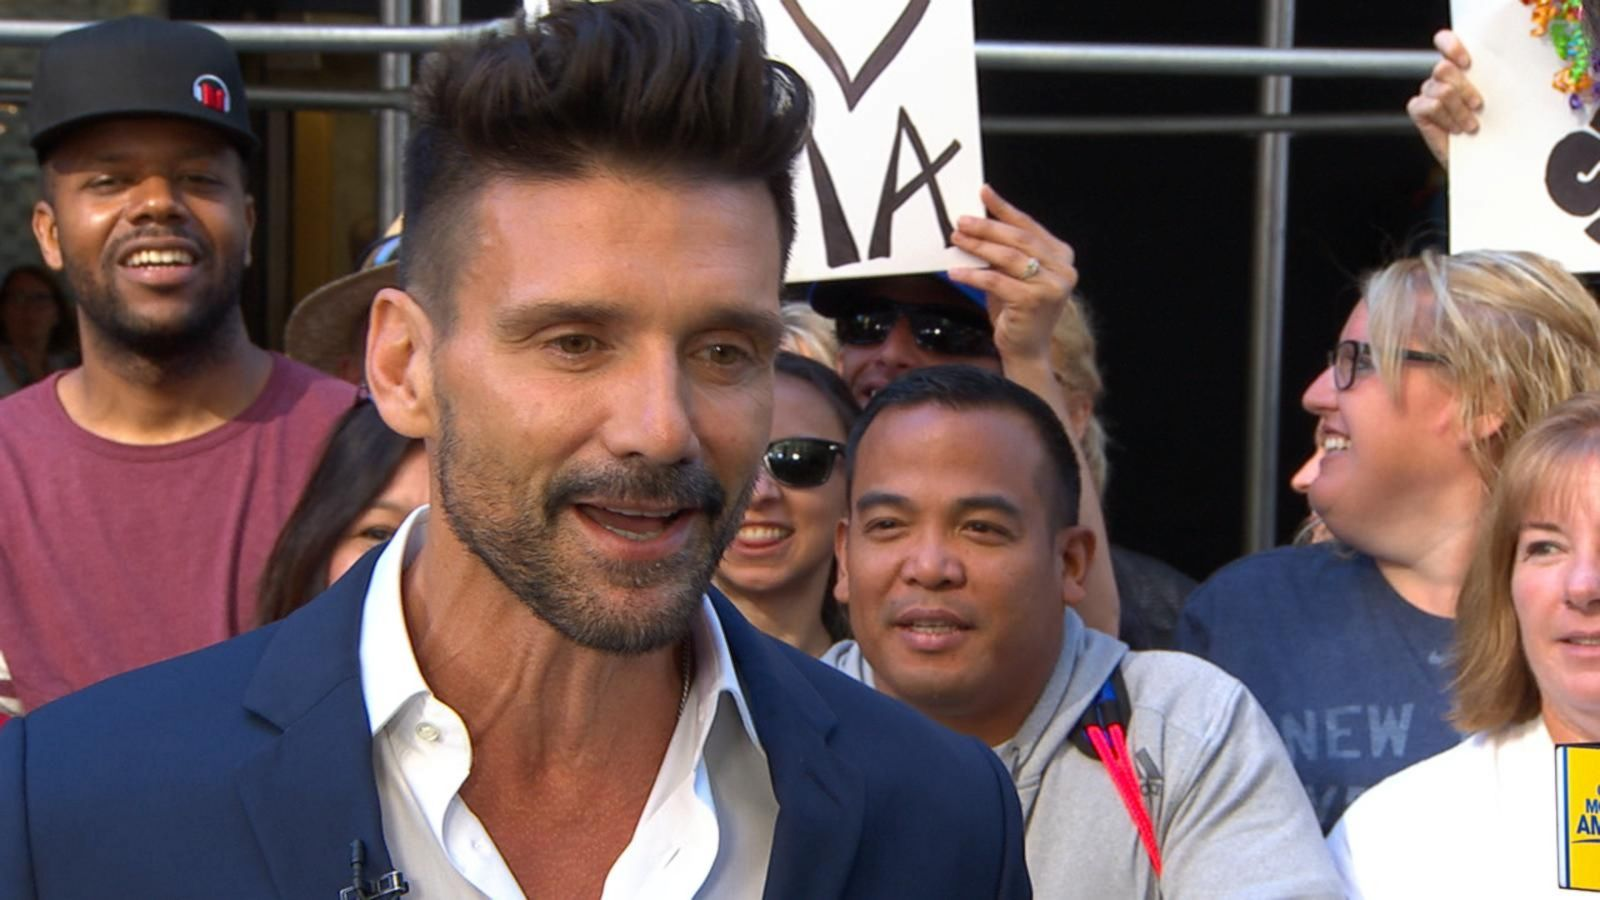 Frank Grillo Of The Purge Cites Wine As His Secret To Staying